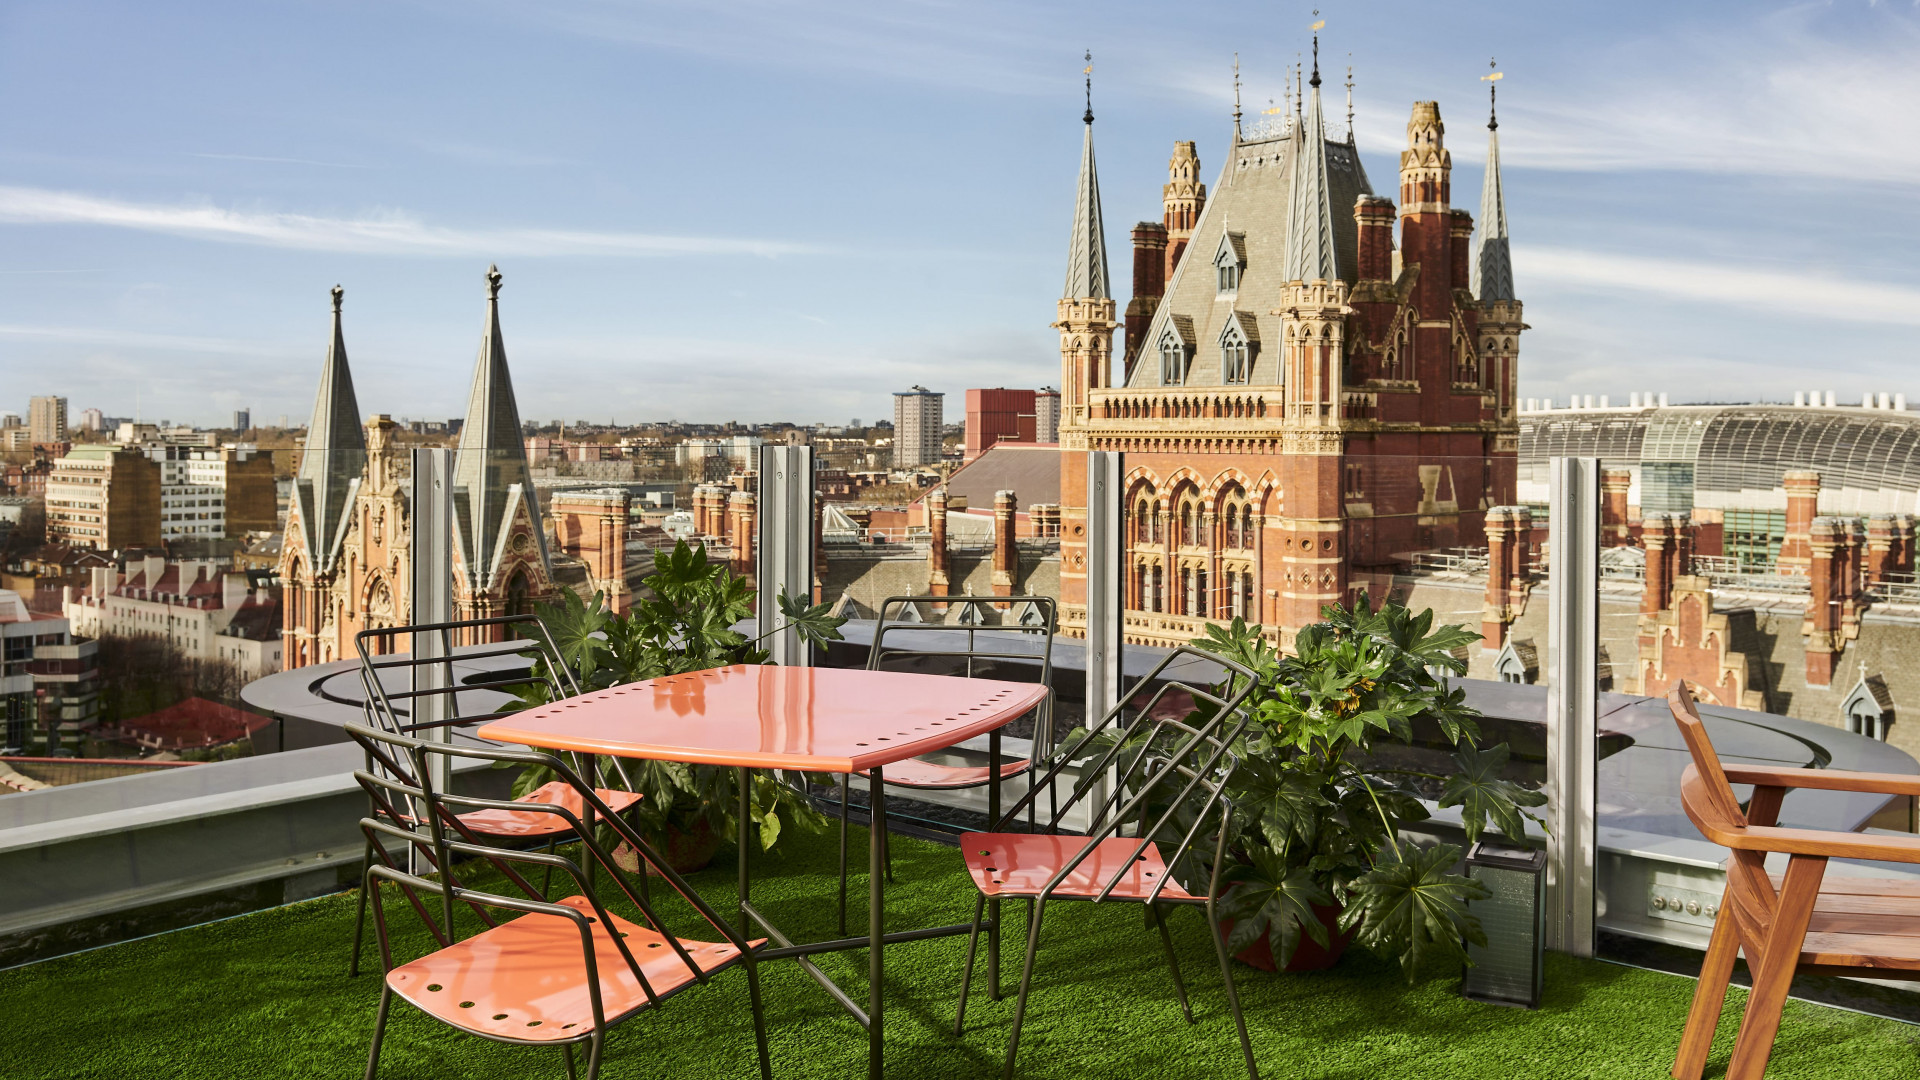 This is an image of The Standard Rooftop at The Standard, London in King's Cross.